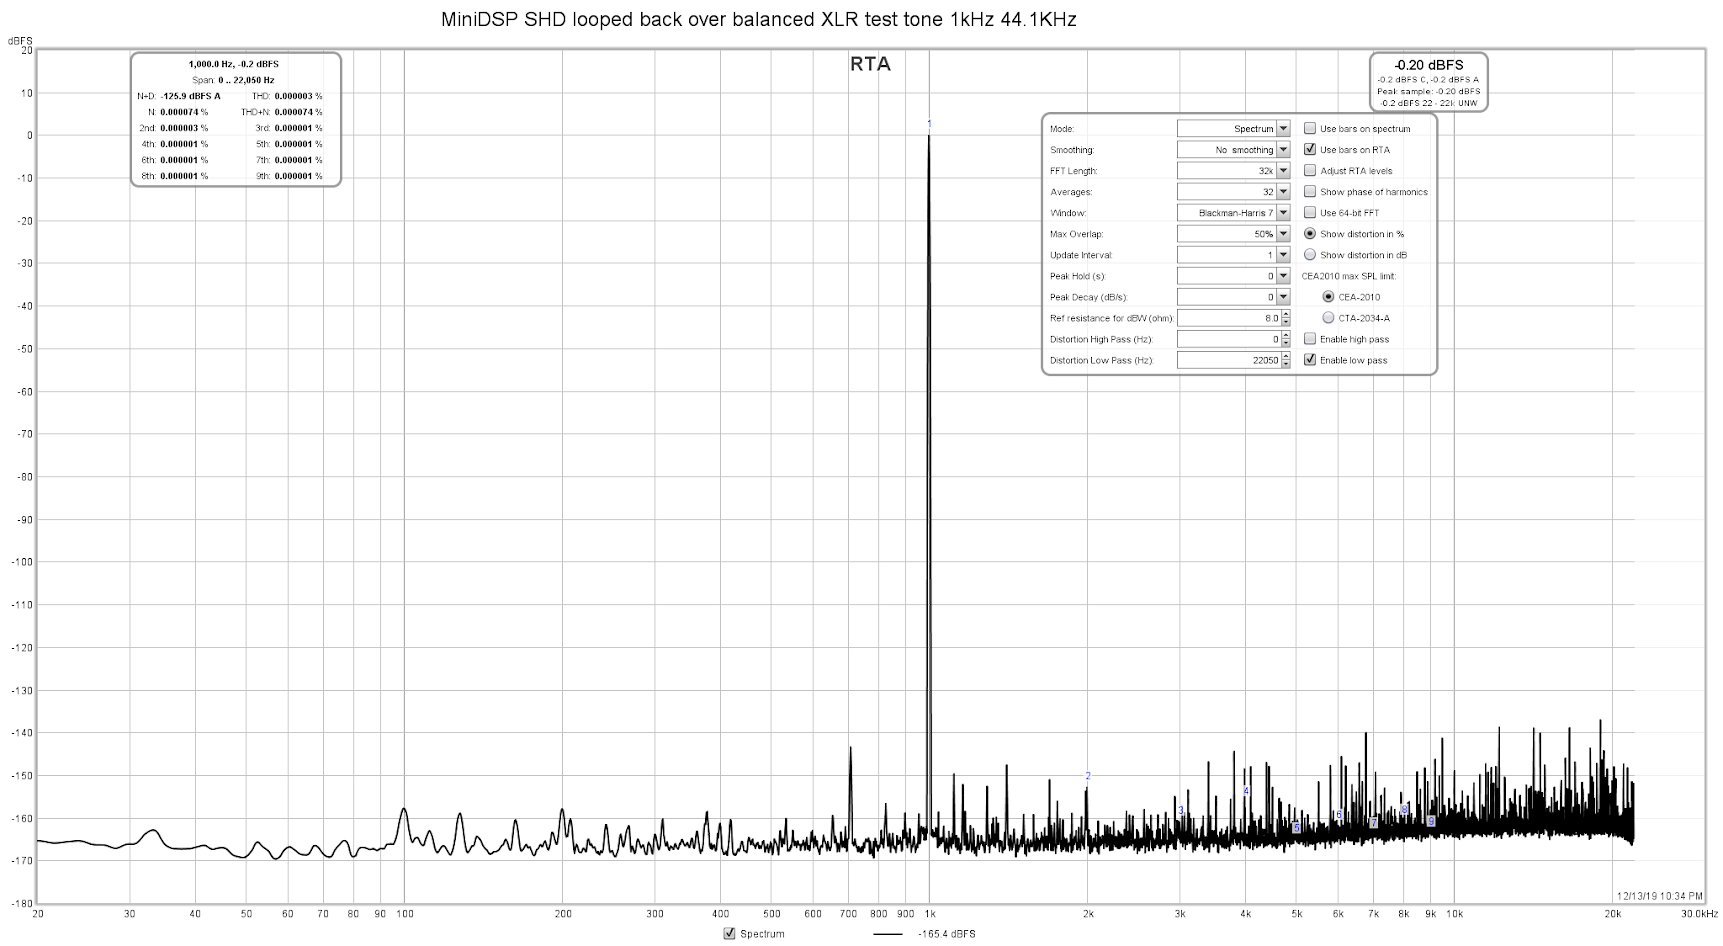 MiniDSP SHD looped back over balanced XLR test tone 1kHz 44.1KHz 24-bit dithered 0dBFS.png